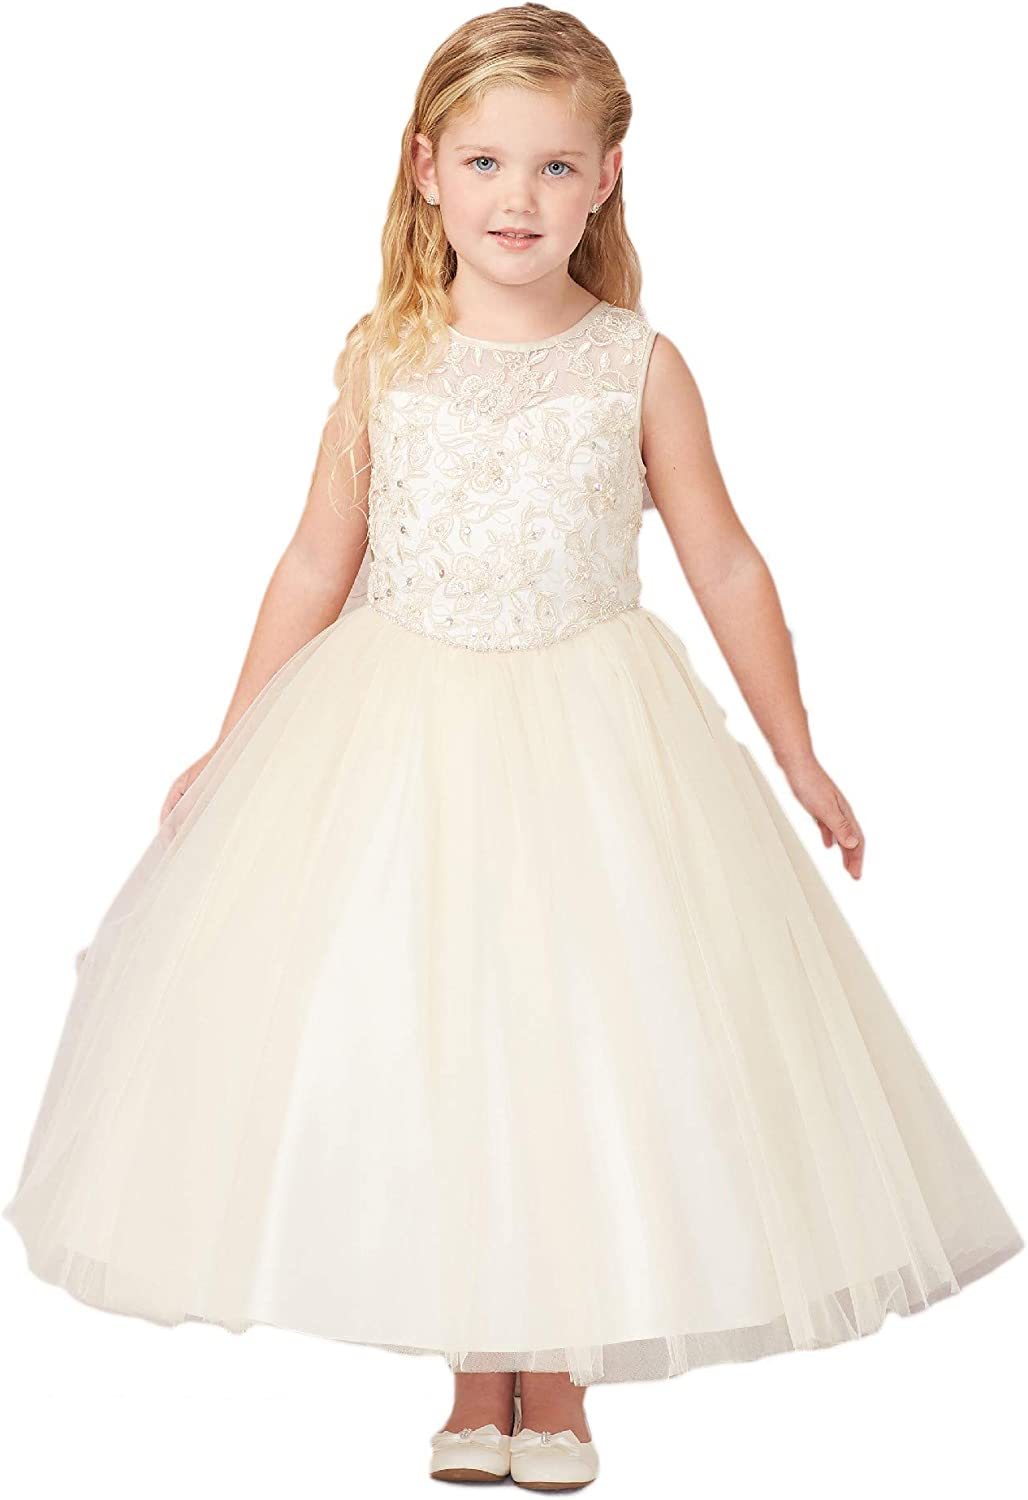 Tip Top Kids Little Girls Champagne Illusion Lace Tulle Flower Girl Easter Dress 2-6